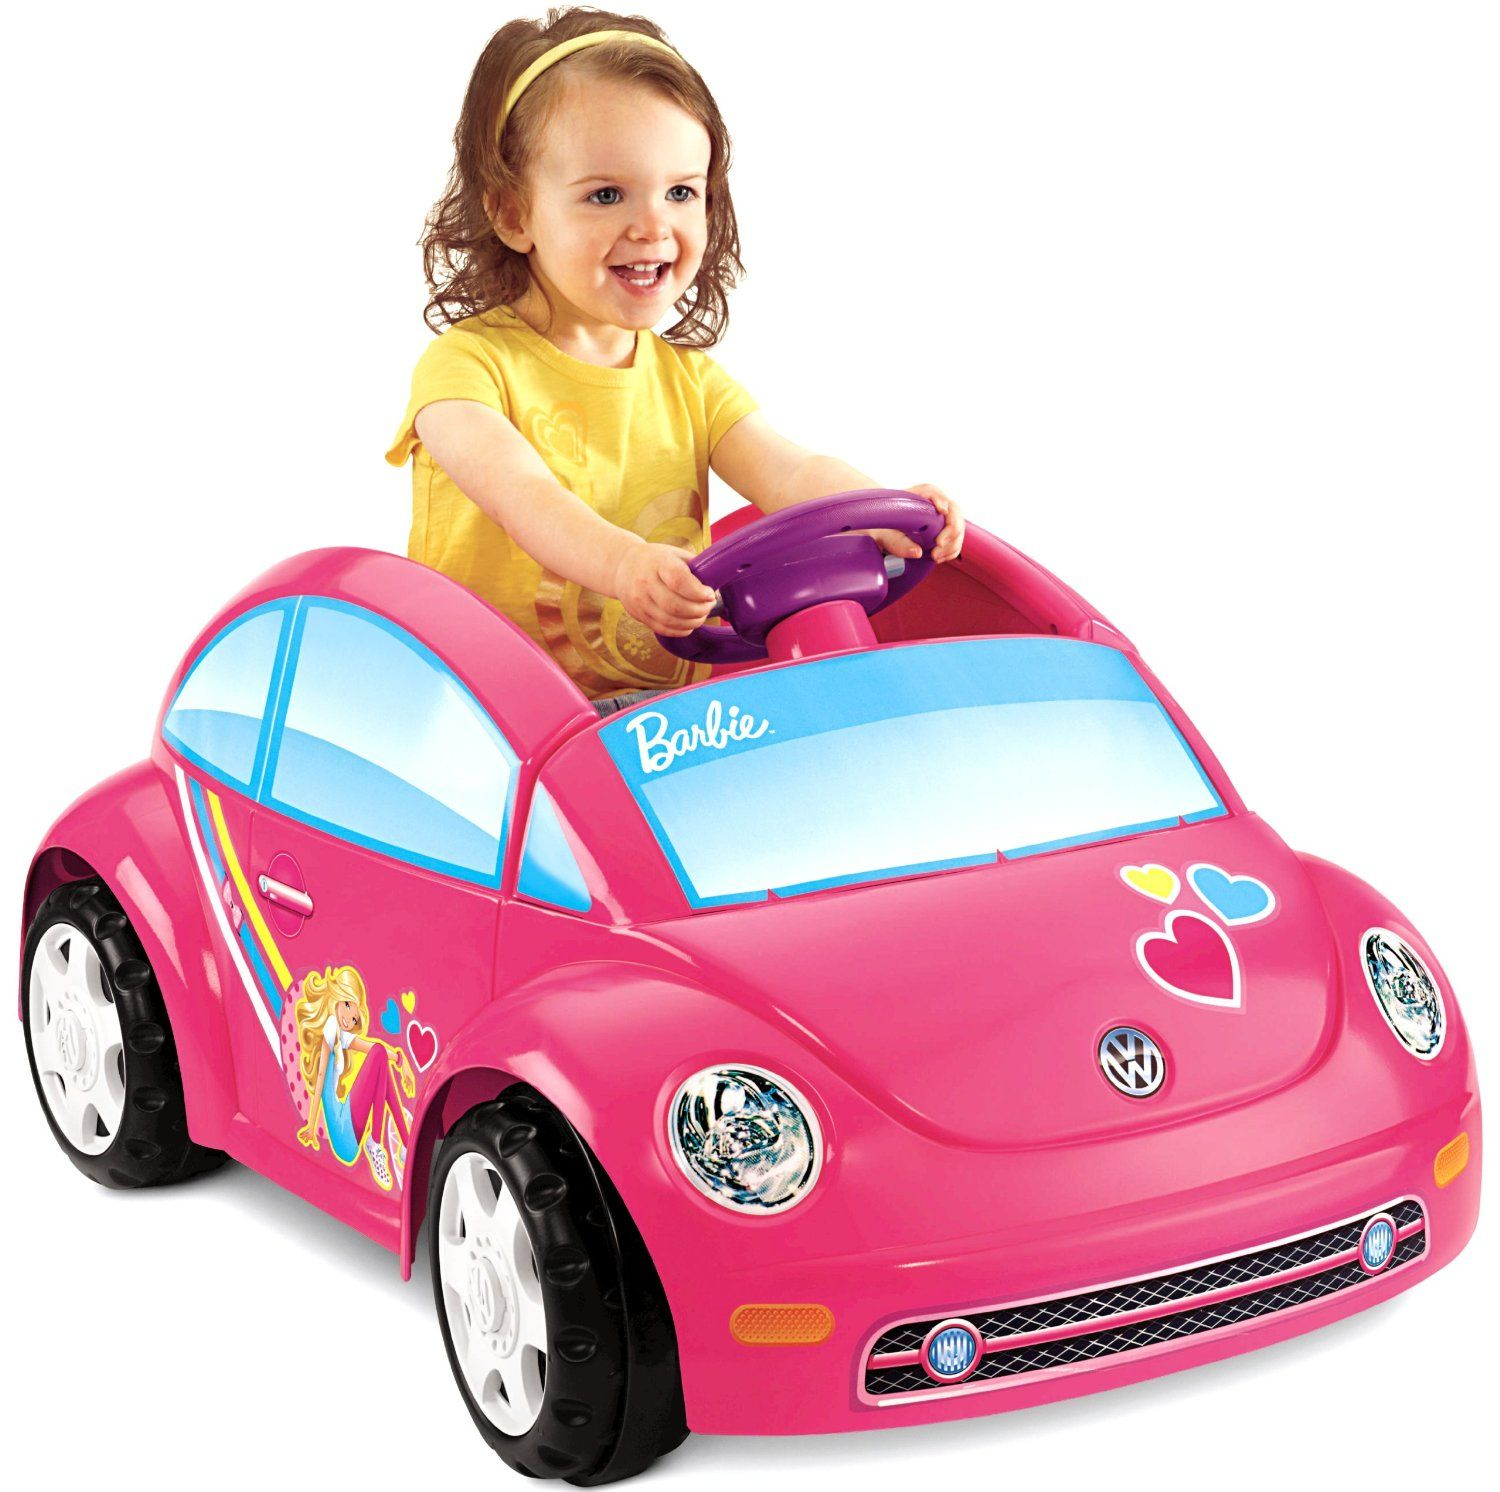 Barbie Volkswagen New Beetle Cars for Kids Pinterest